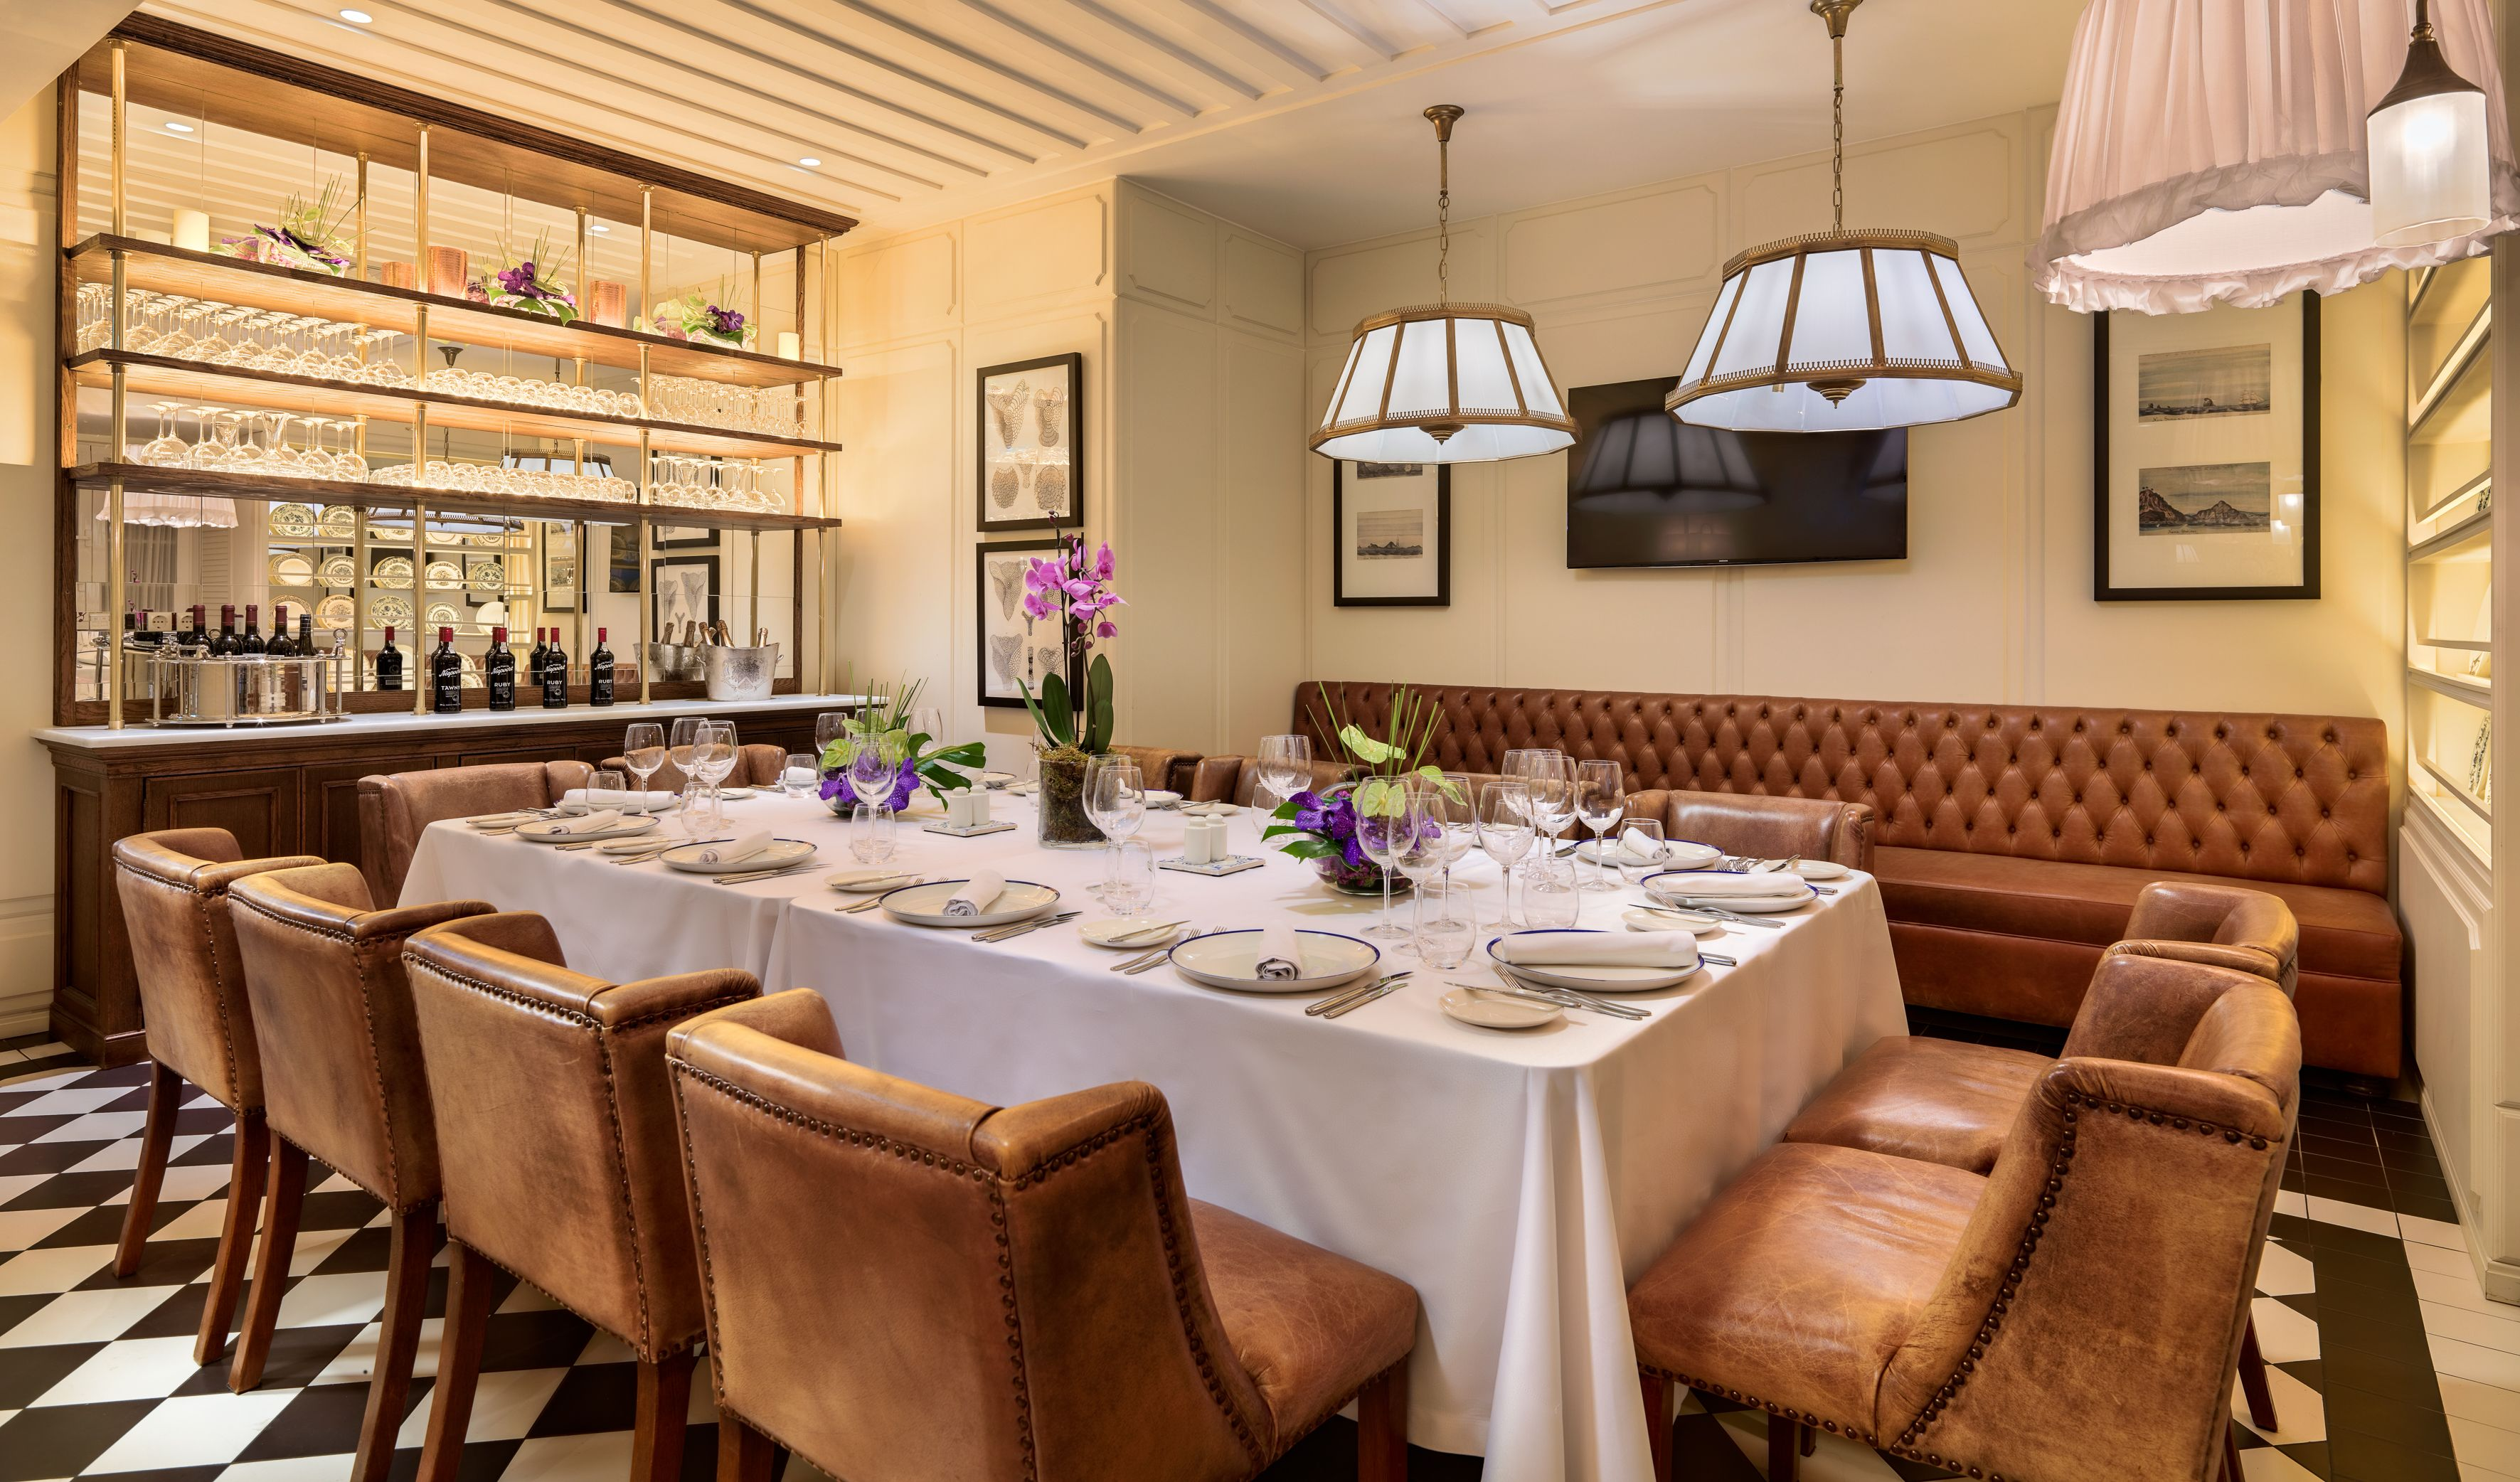 Book your event at H10 Duque de Loulé Boutique Hotel! Our Azul e Branco restaurant is the perfect place for a group dinner. #h10hotels